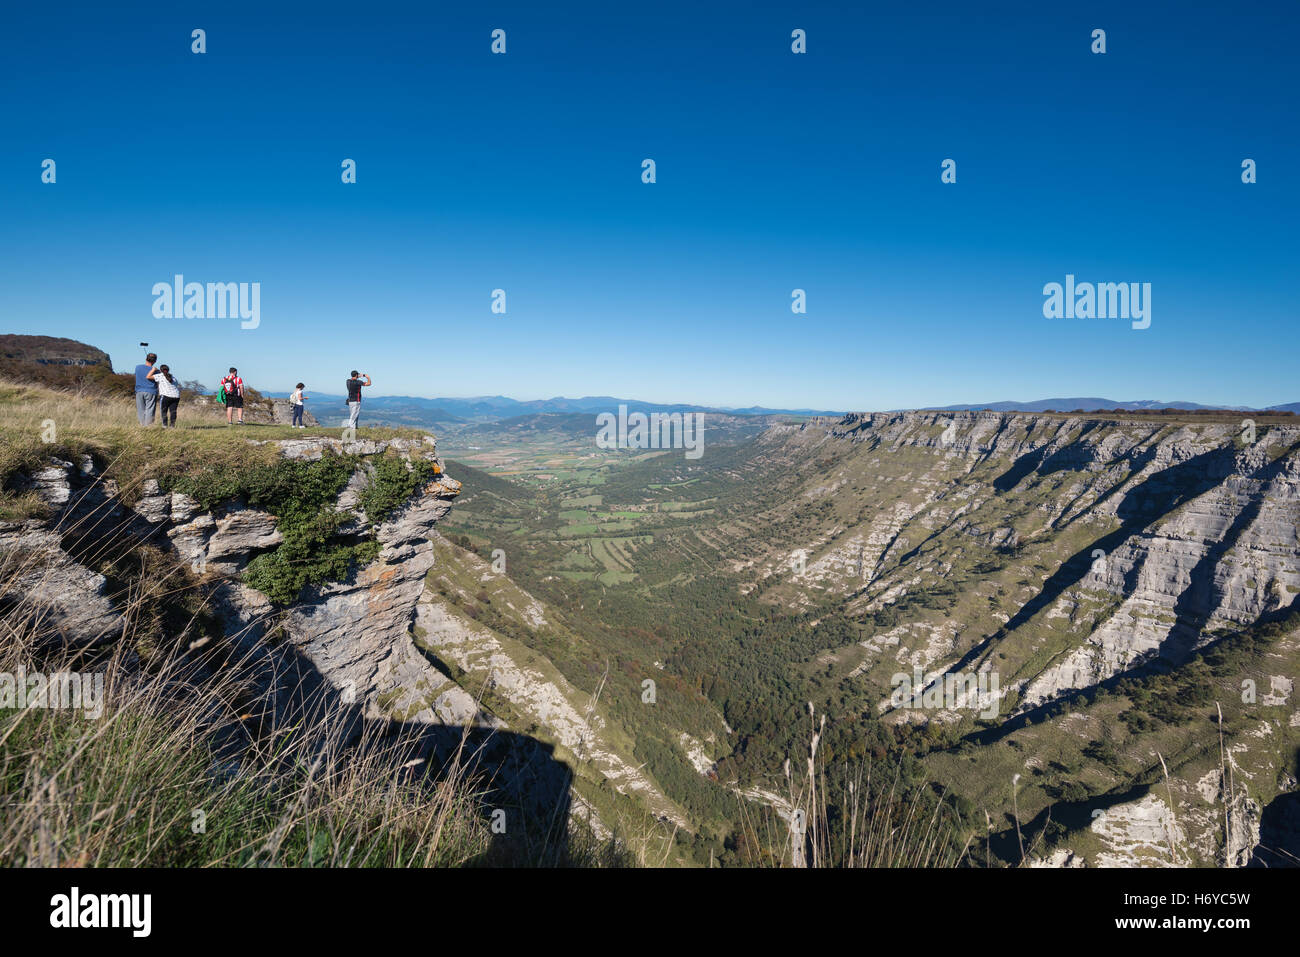 Tourist visiting famous viewpoint Salto del nervion in Burgos, Spain. - Stock Image